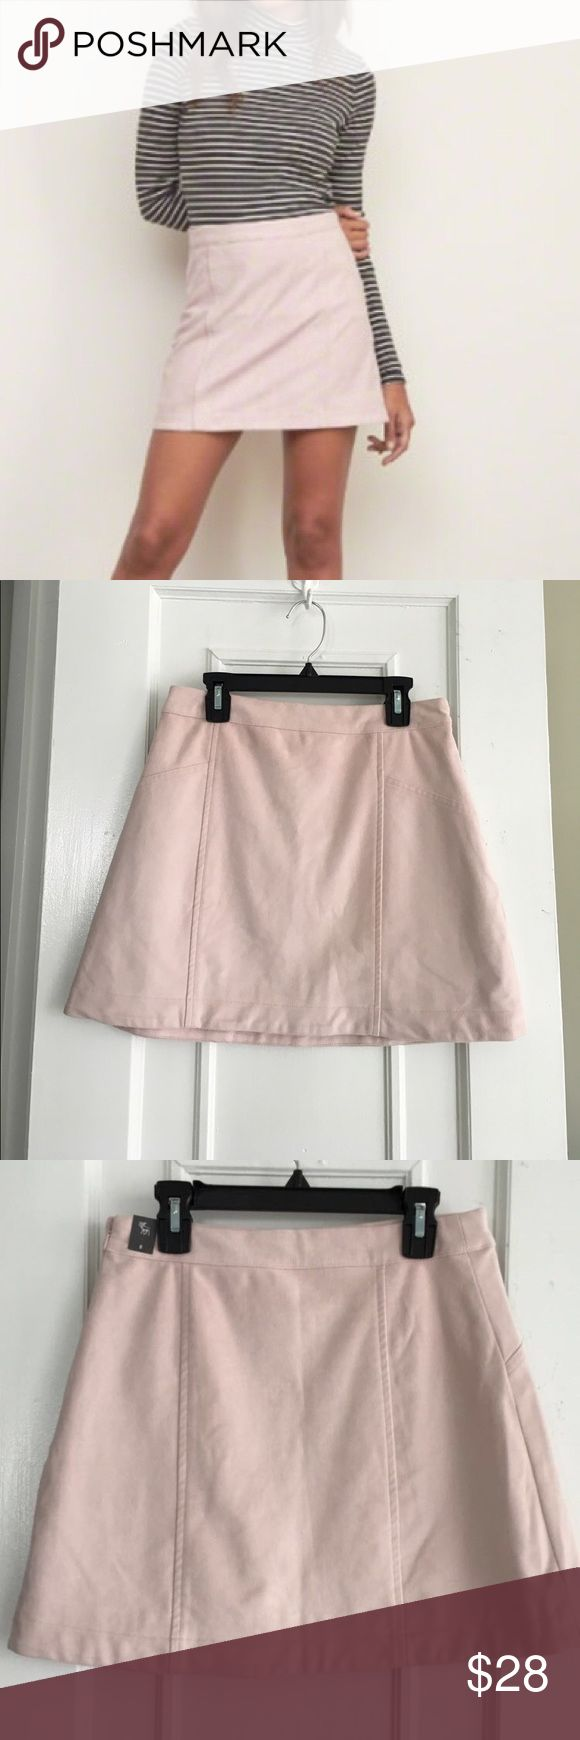 Abercrombie and Fitch Suede Pink Skirt NWT A&F light pink mini skirt! Great with tights for the winter! No flaws. Abercrombie & Fitch Skirts Mini